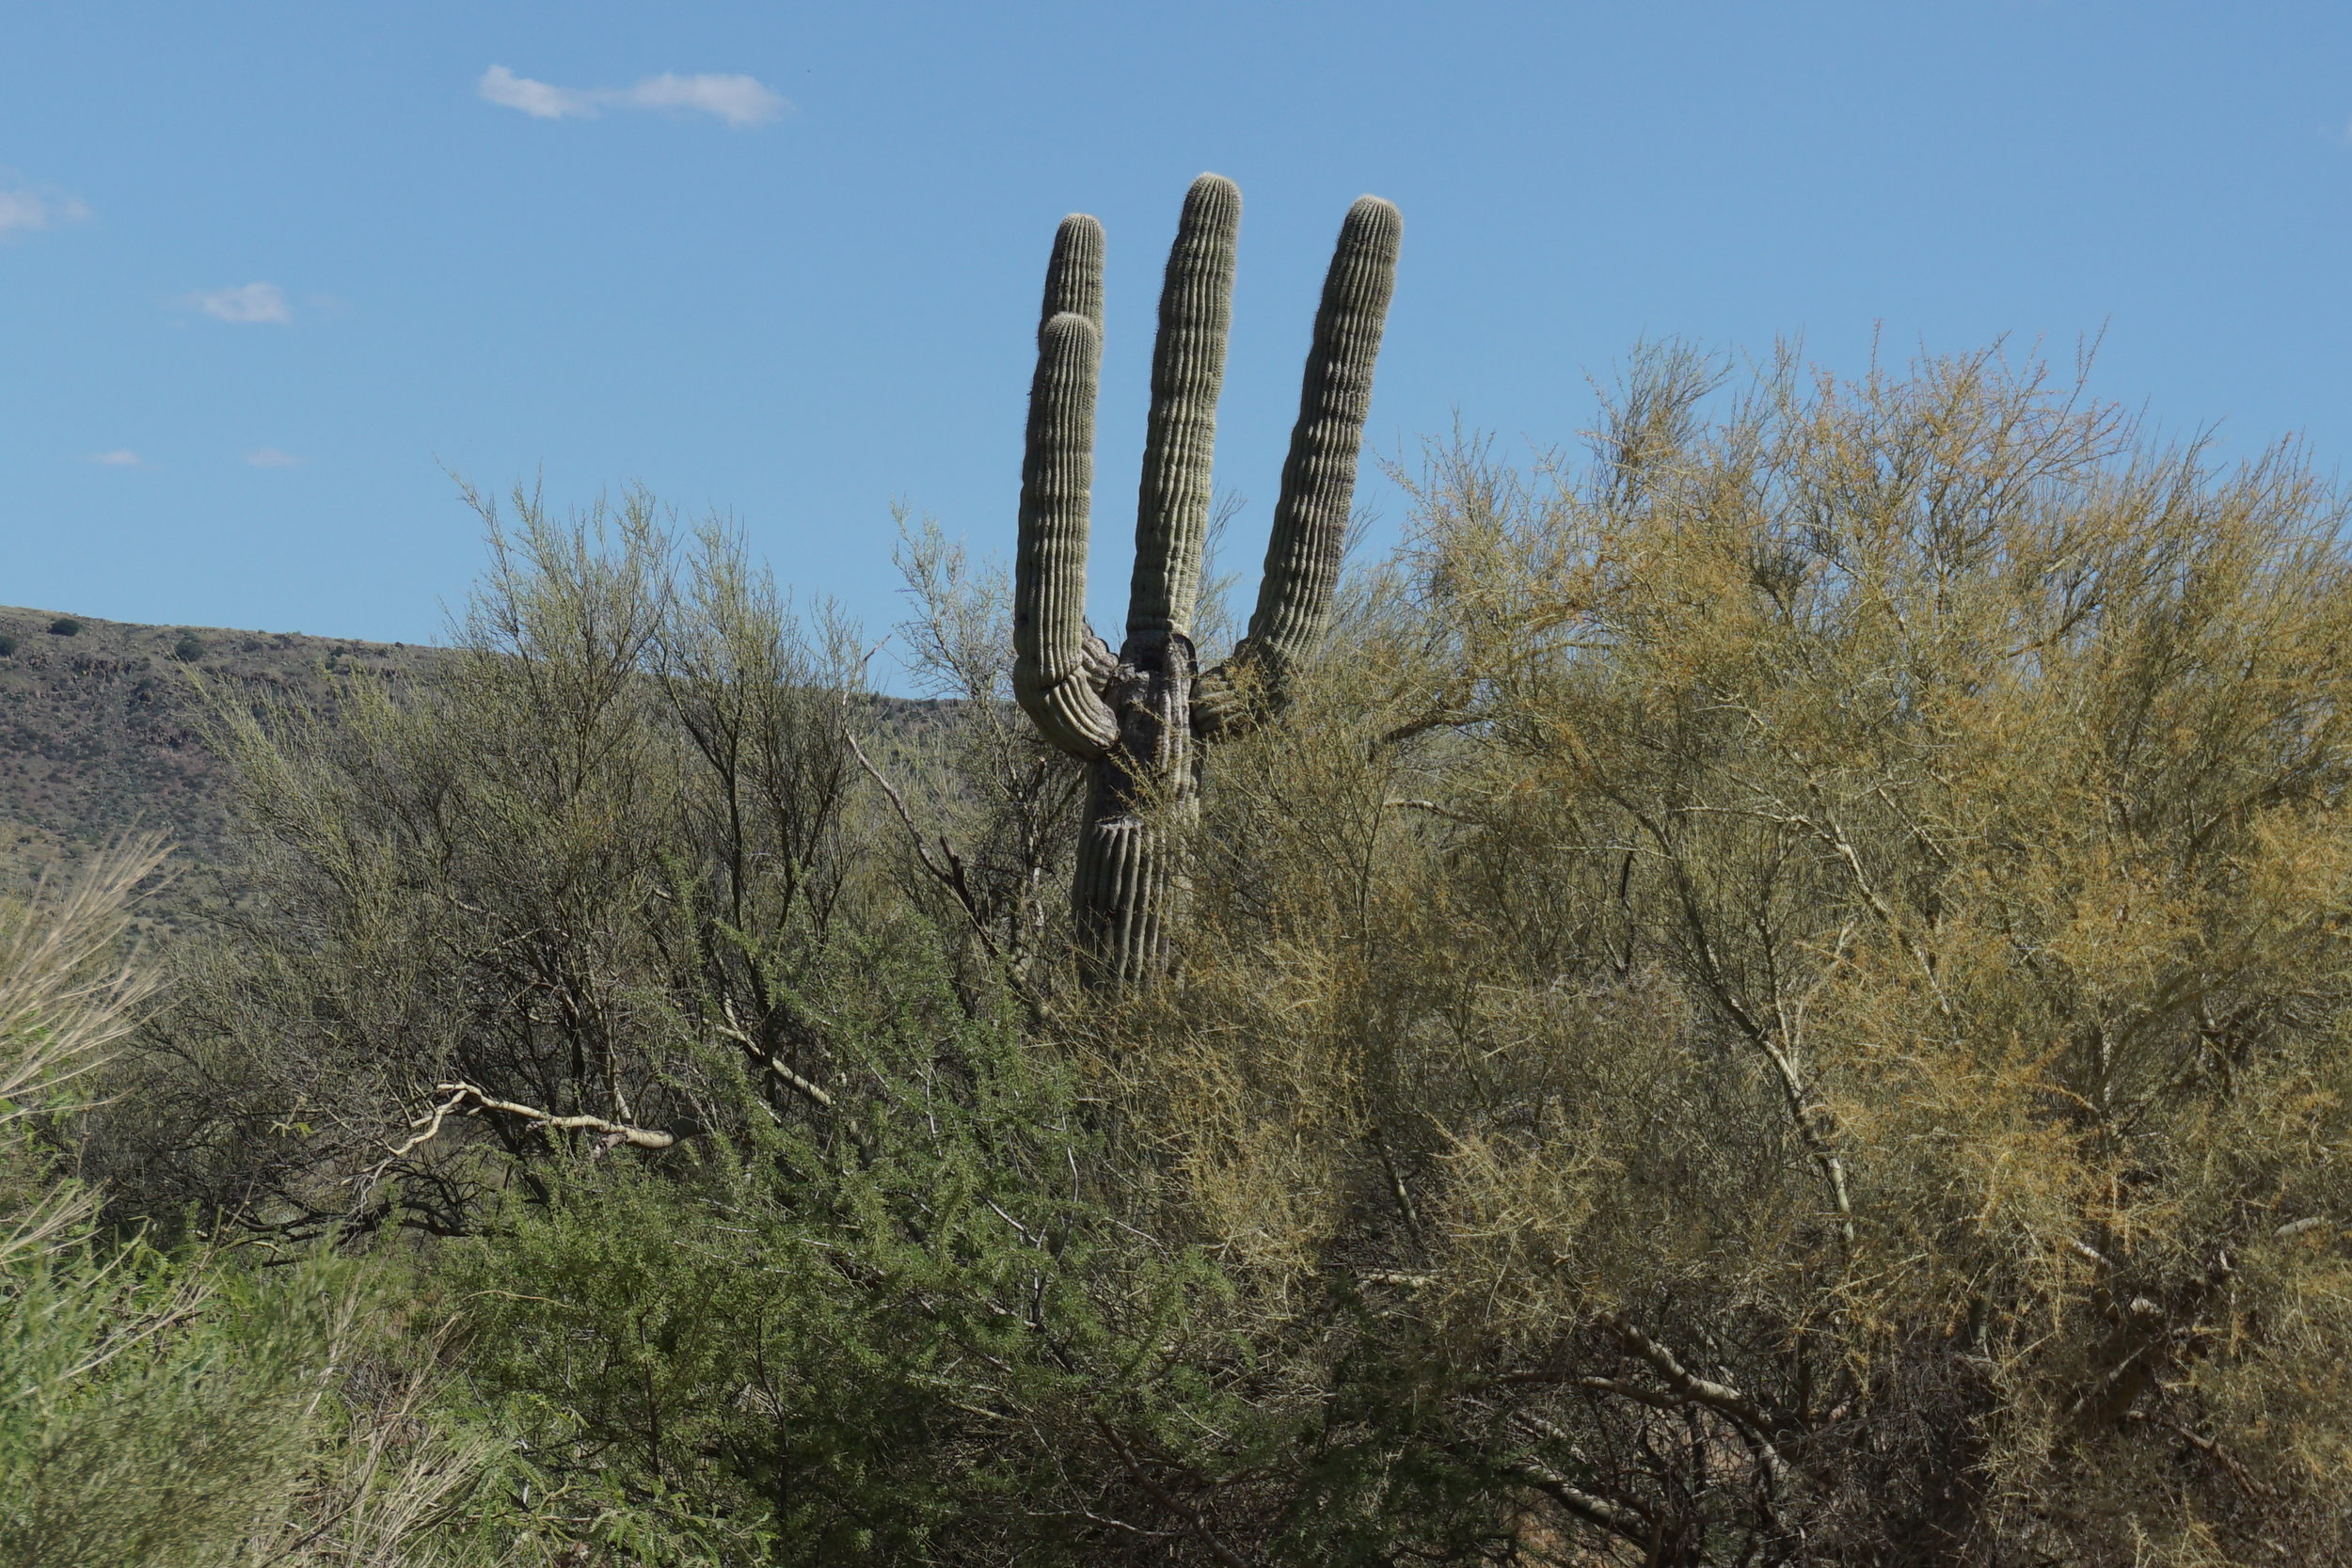 One of the few saguaros in this area.  Mostly ocotillo and palo verde trees